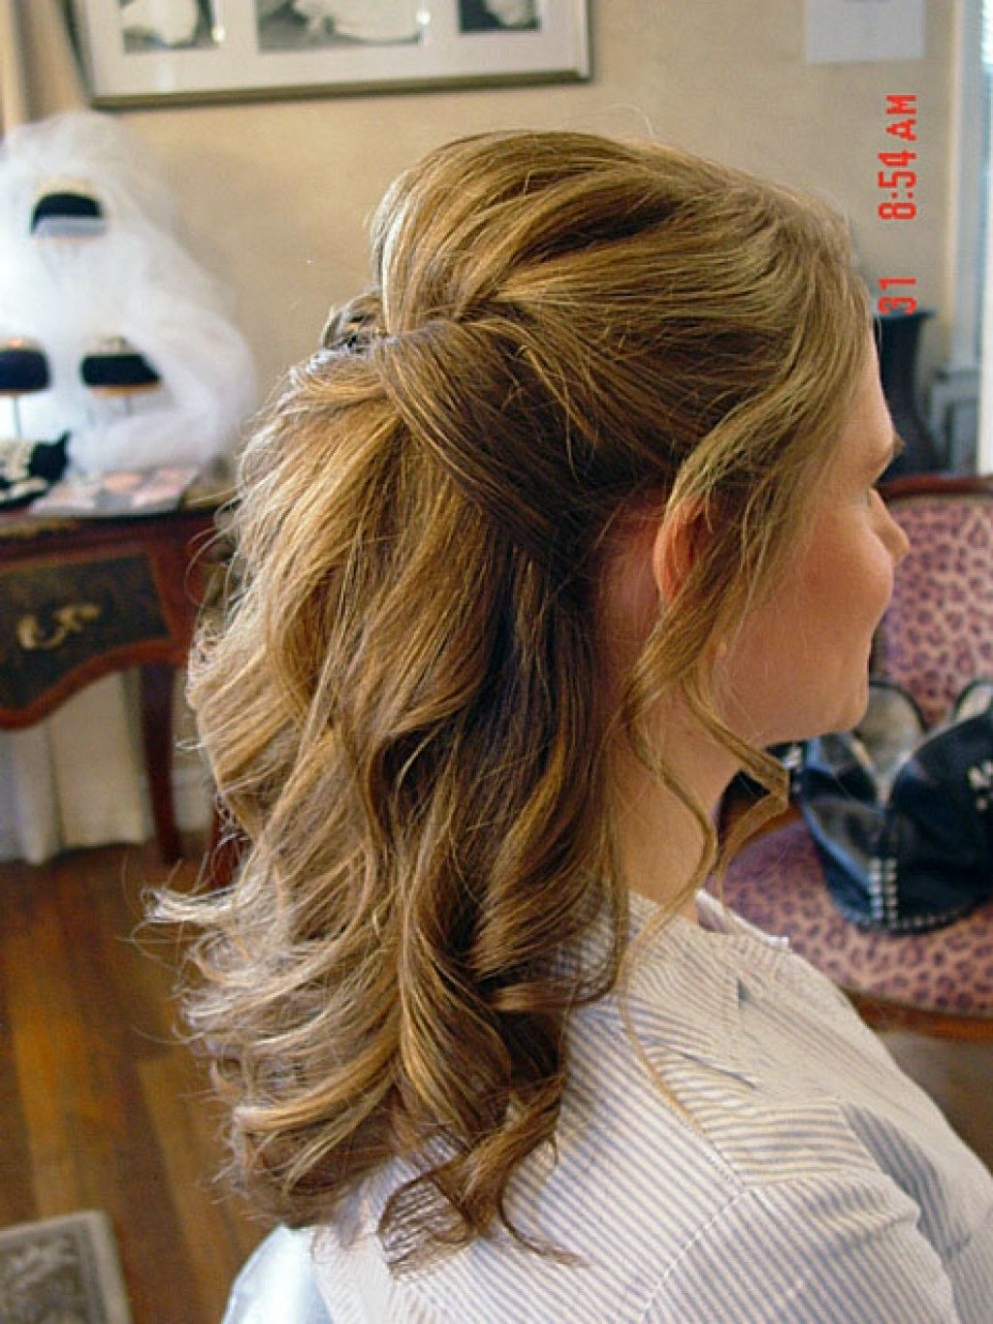 Recent Wedding Hairstyles For Medium Length Layered Hair Regarding Medium Length Half Up Half Down Flowers – Google Search (View 12 of 15)